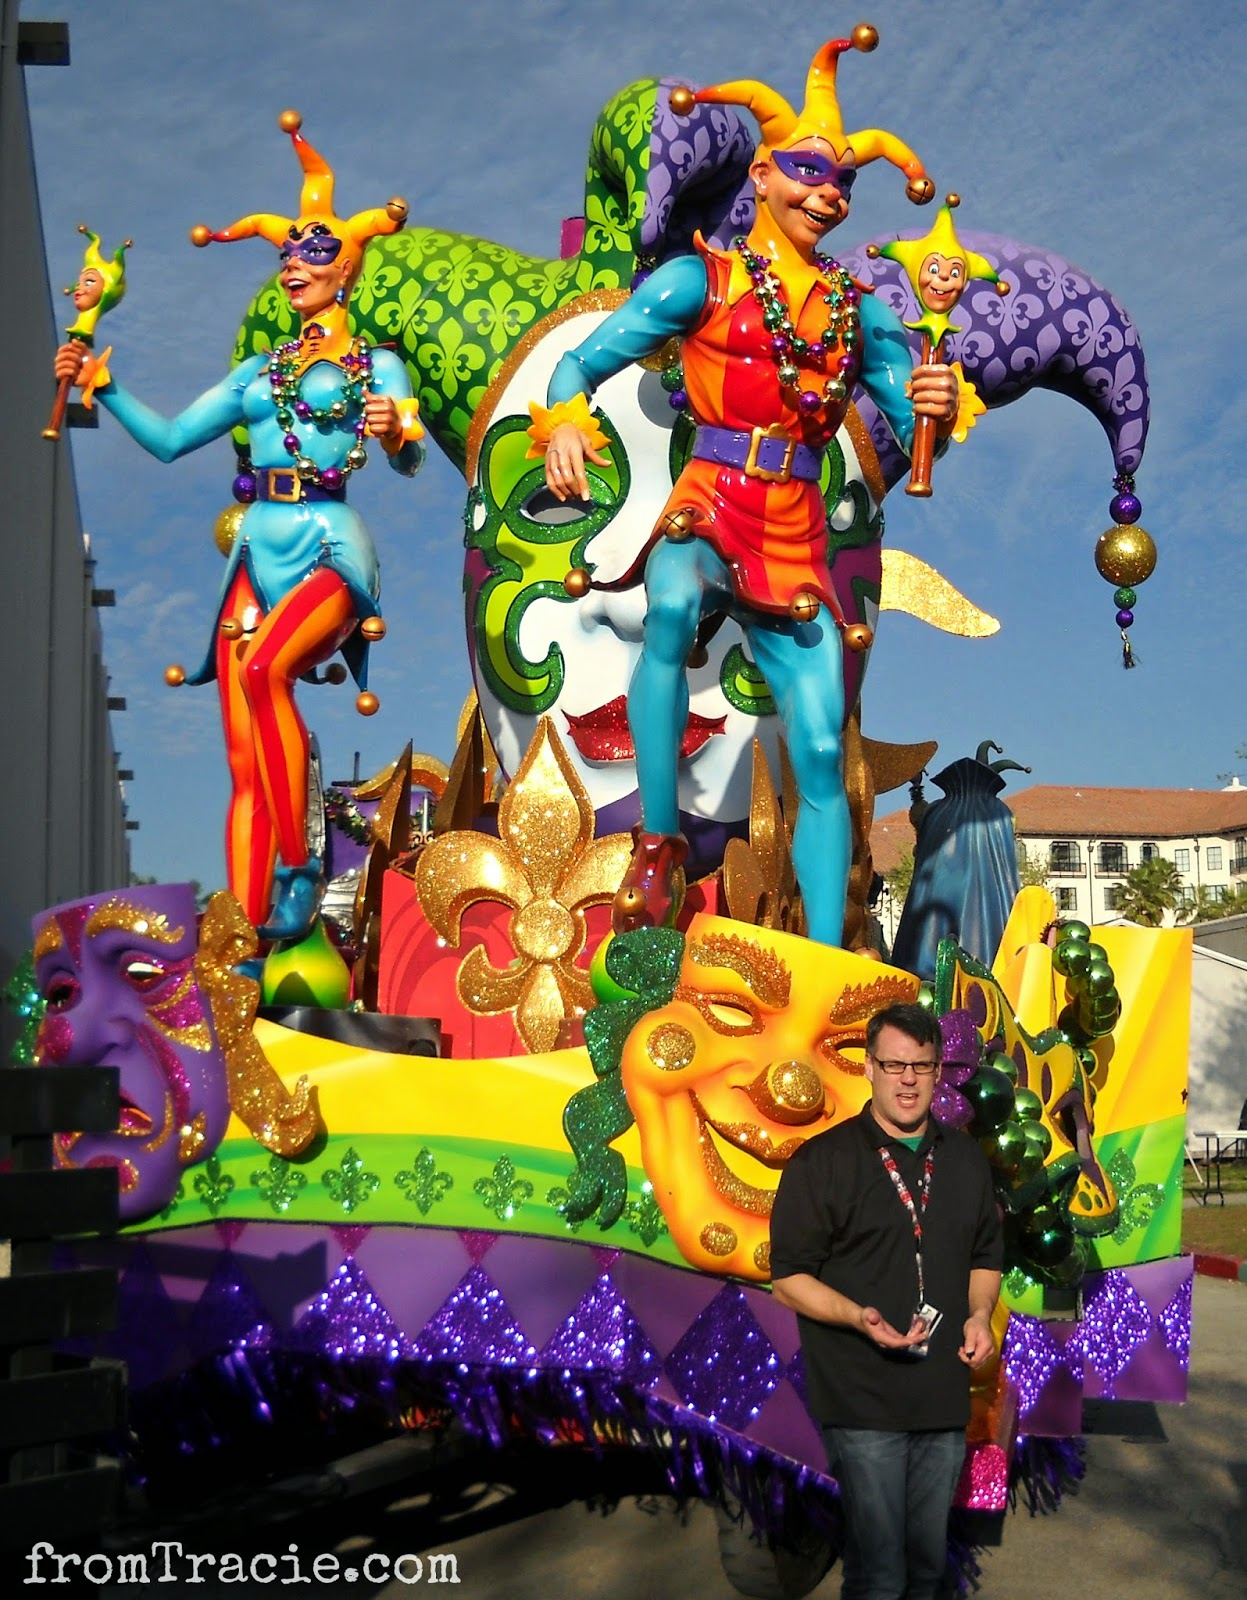 Patrick Braillard and Jester Float